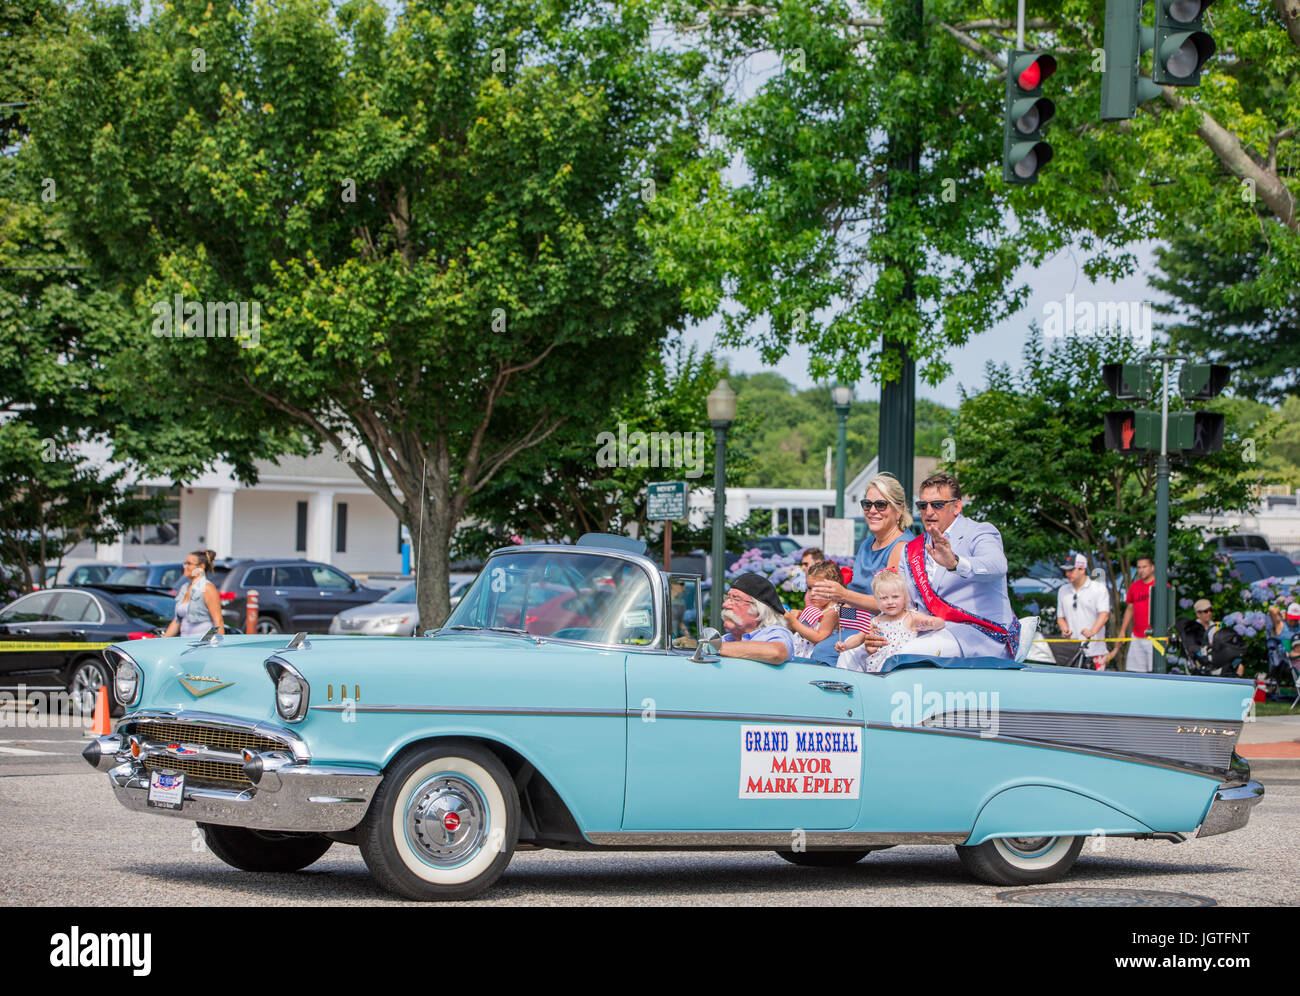 grand marshall, Mayor Mark Epley riding in the back of a 1950s era chevy in the fourth of july parade in southampton, - Stock Image